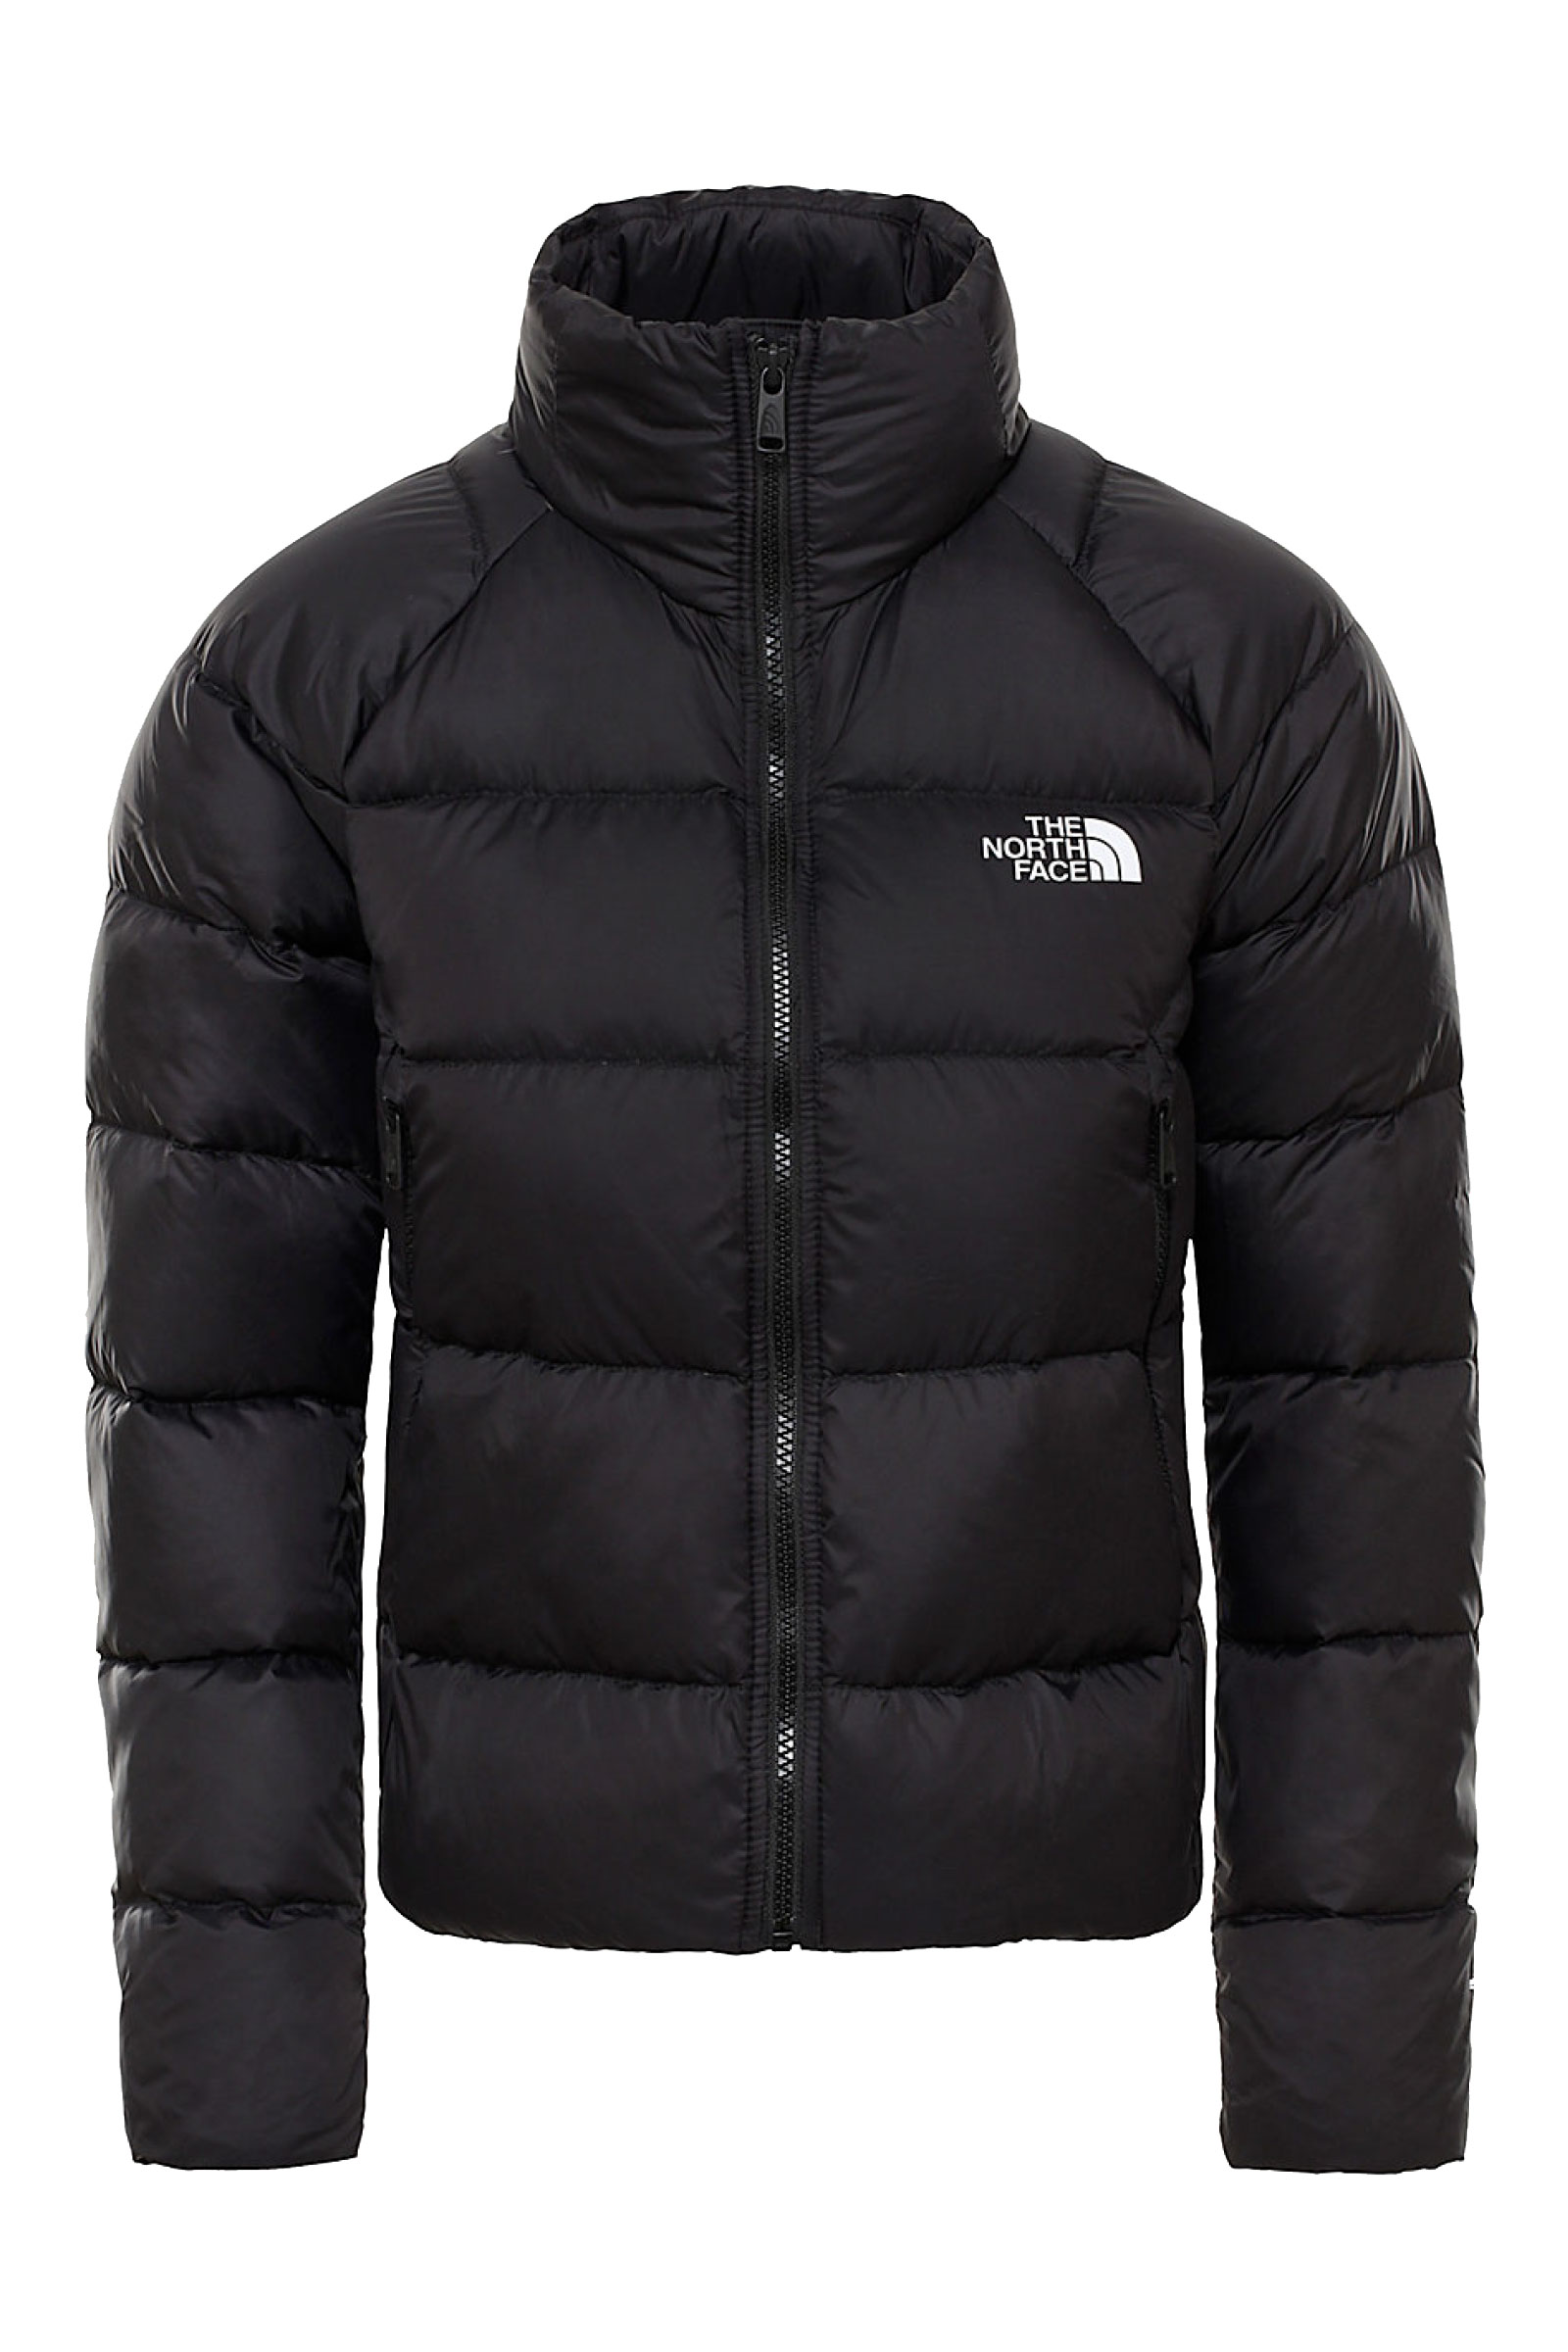 THE NORTH FACE   Jacket   NF0A3Y4SJK3